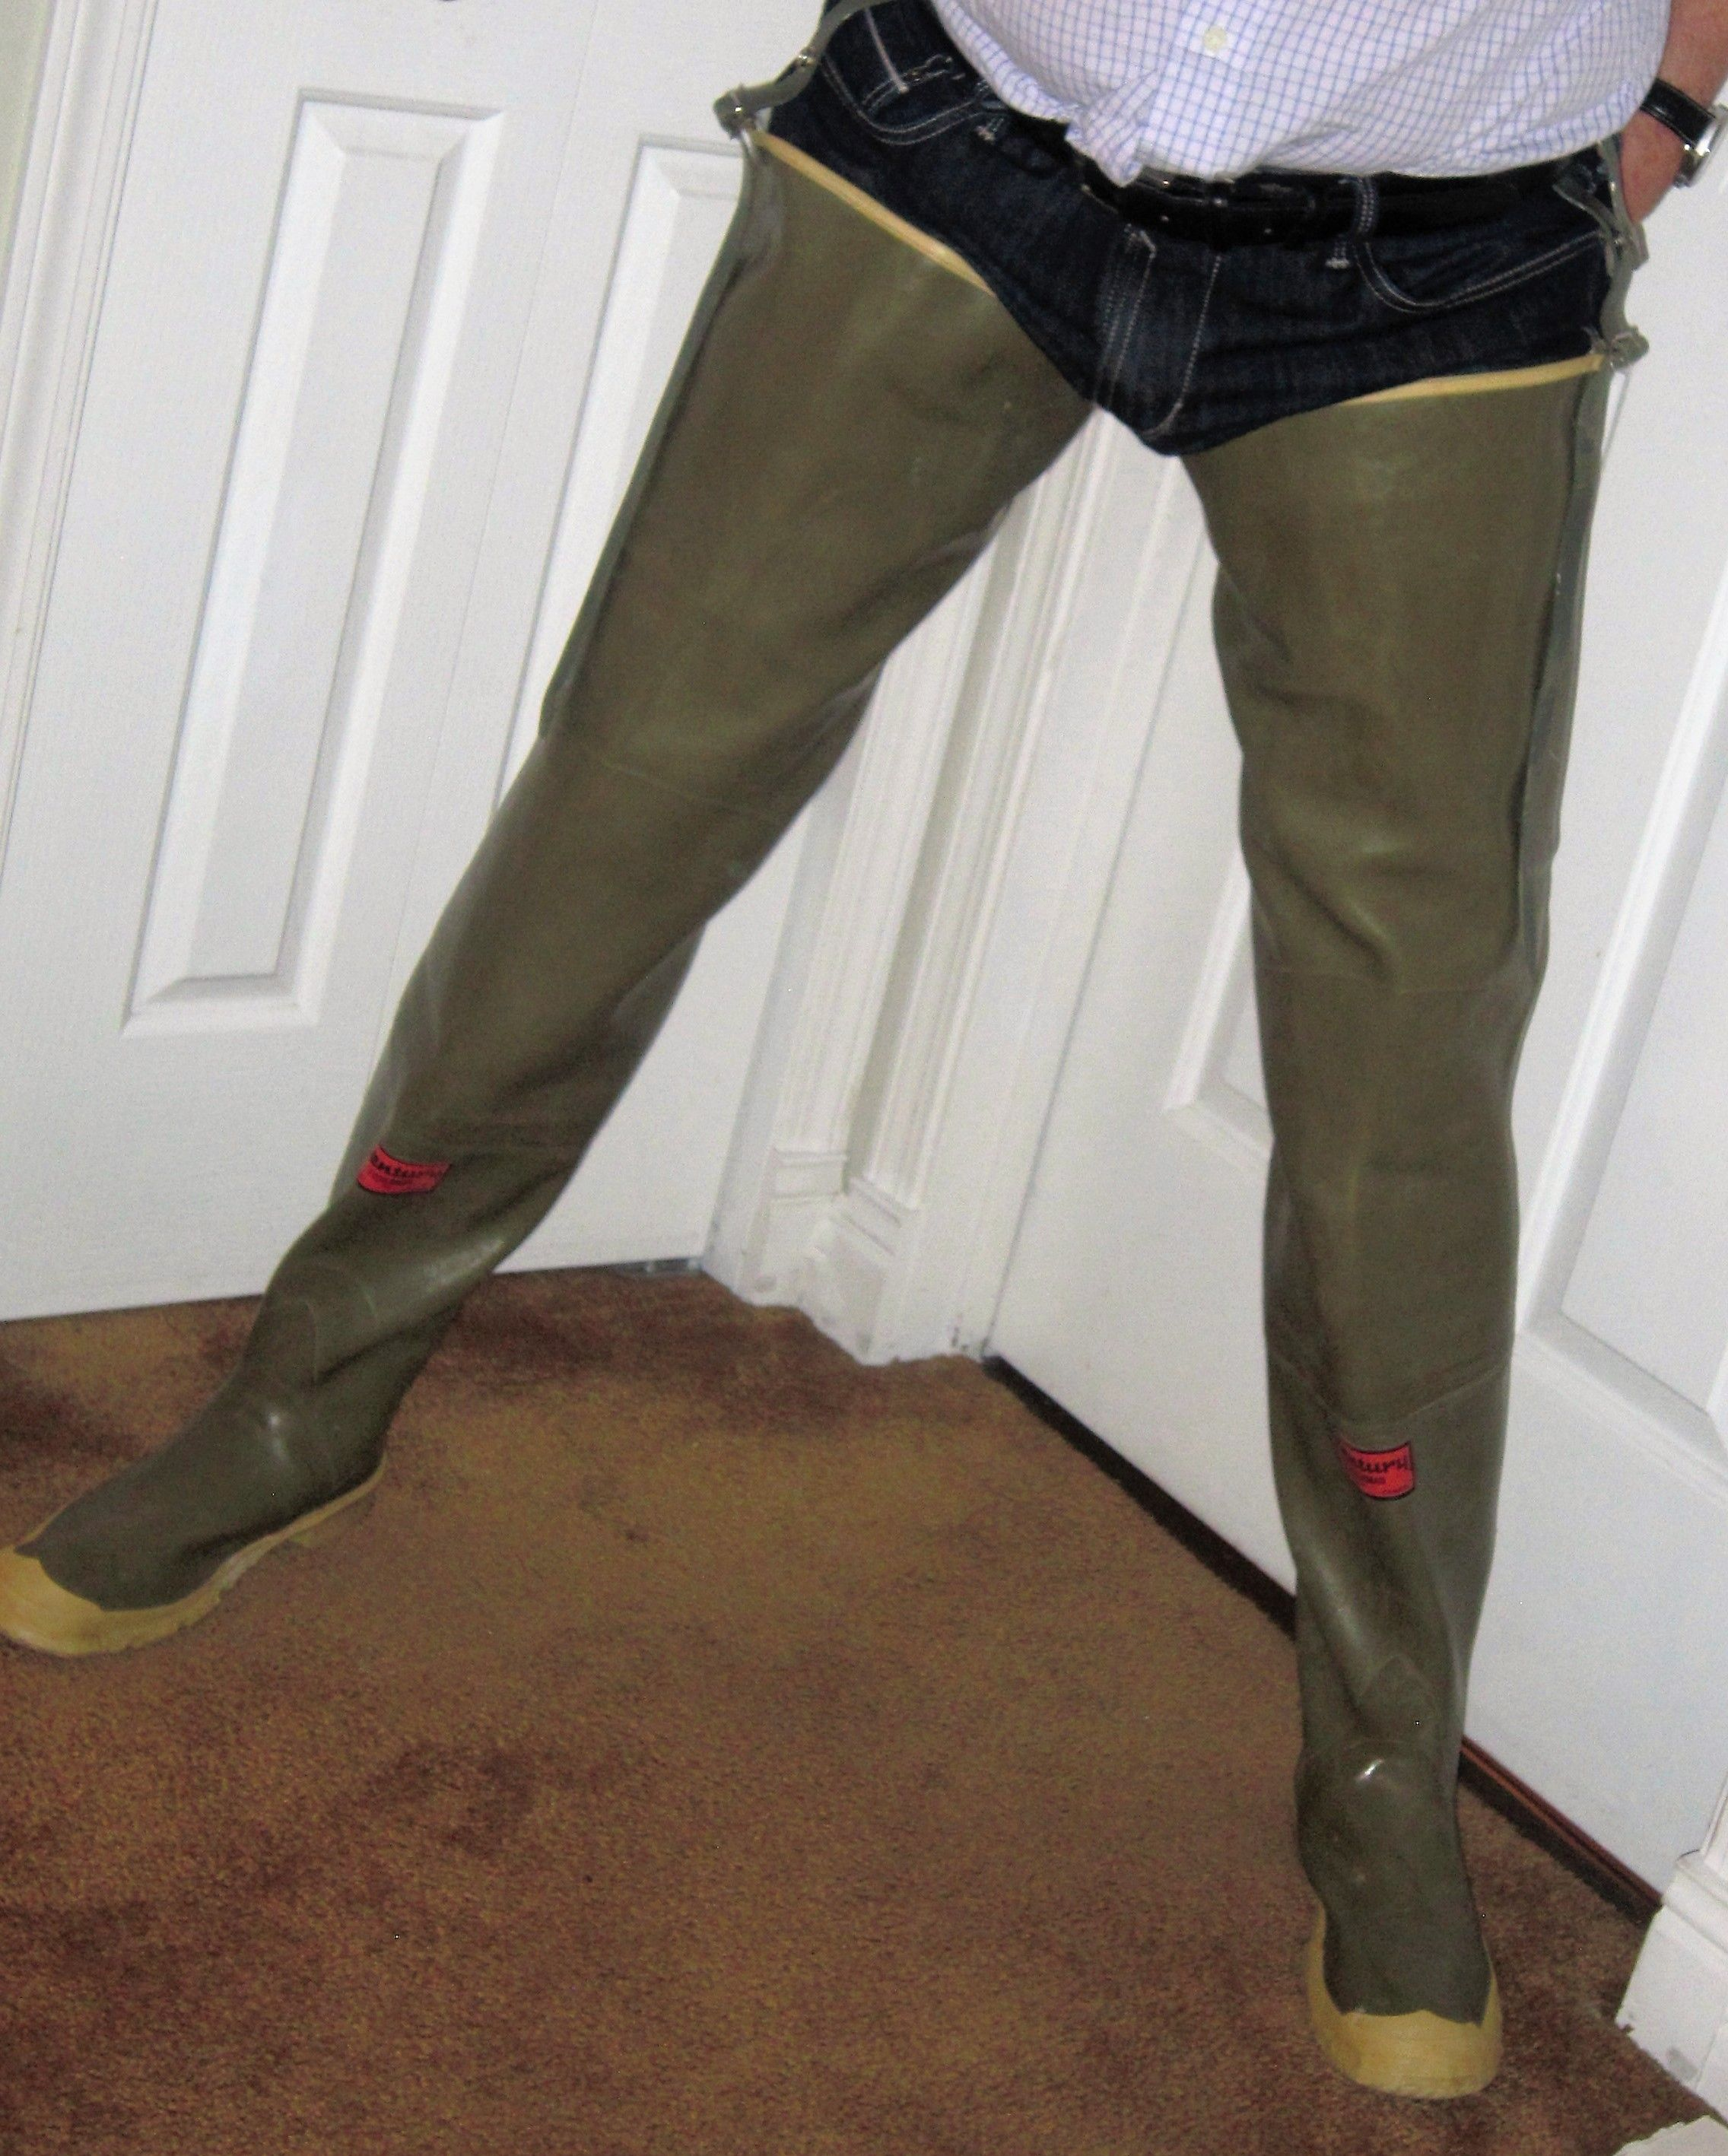 a45ce15051a All the way up real ticklers rubber hip waders jpg 2272x2835 Thigh high rubber  hip boots